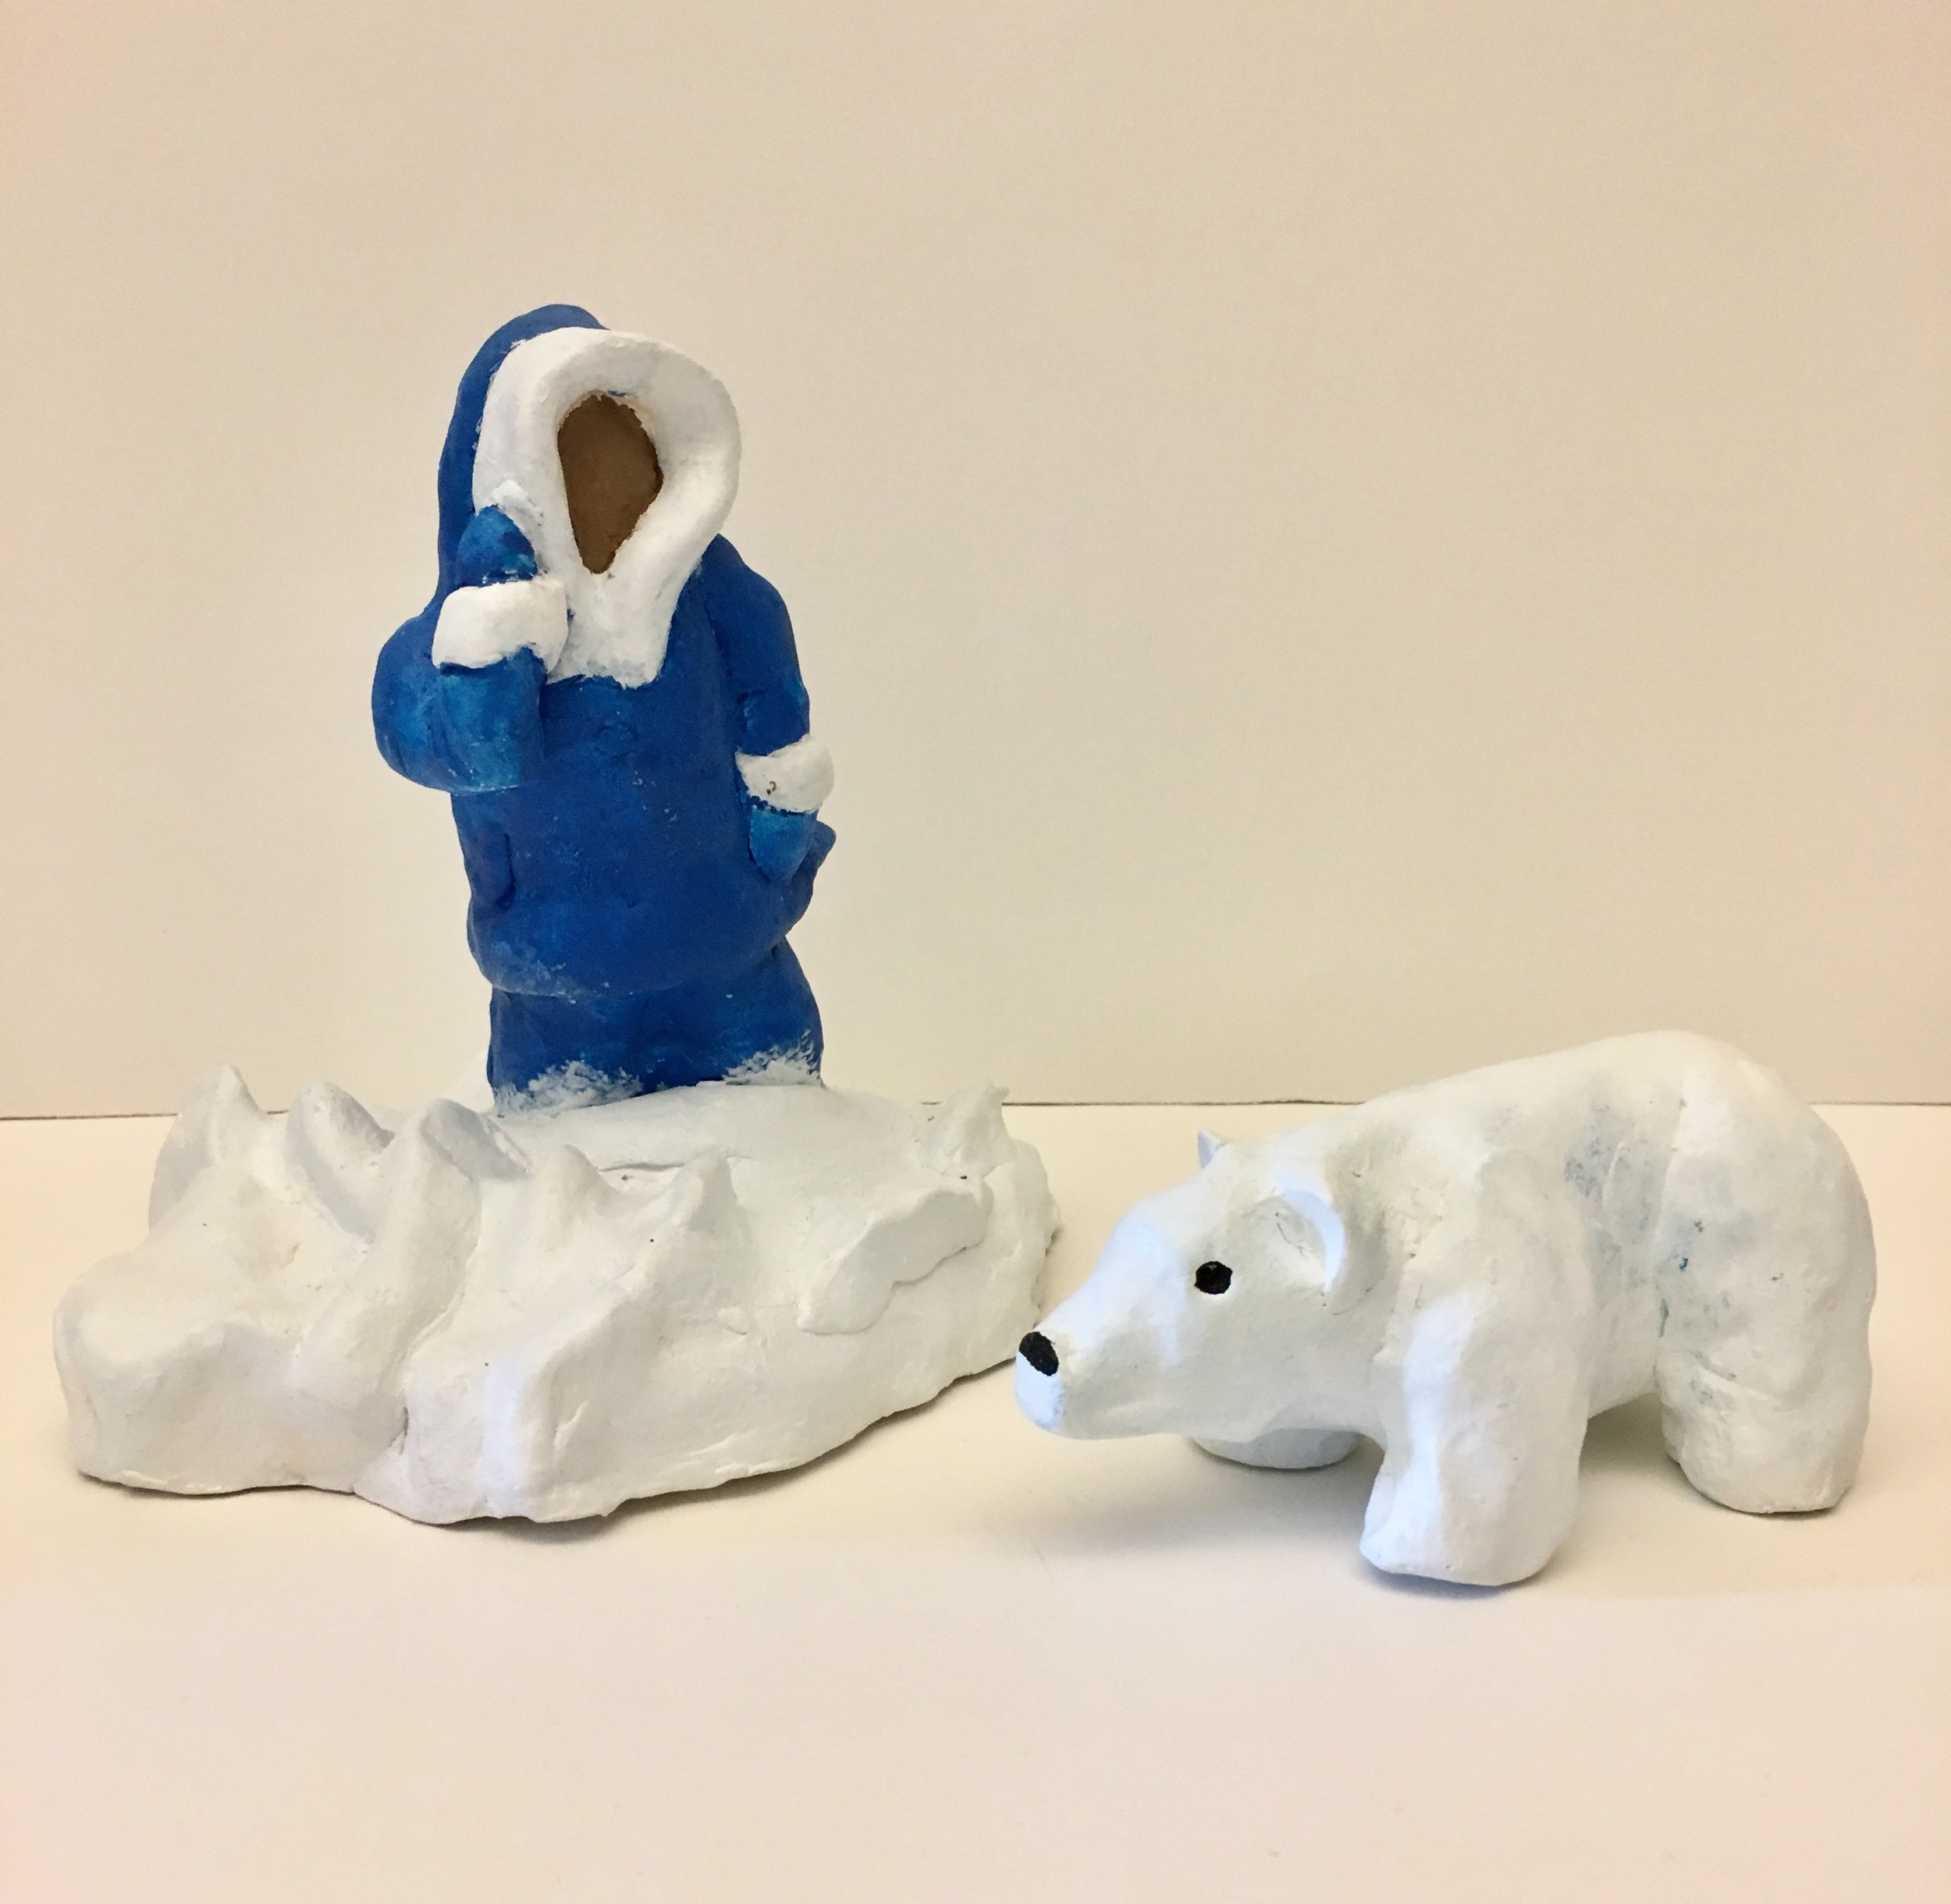 Photo Description: The sculpture depicts an Inuk standing to the left on a bed of snow in a blue parka with white fur trimming on the hood and sleeves; his left arm raised to his ear. To the right is a small white polar bear with black eyes and a black nose stairs forward.